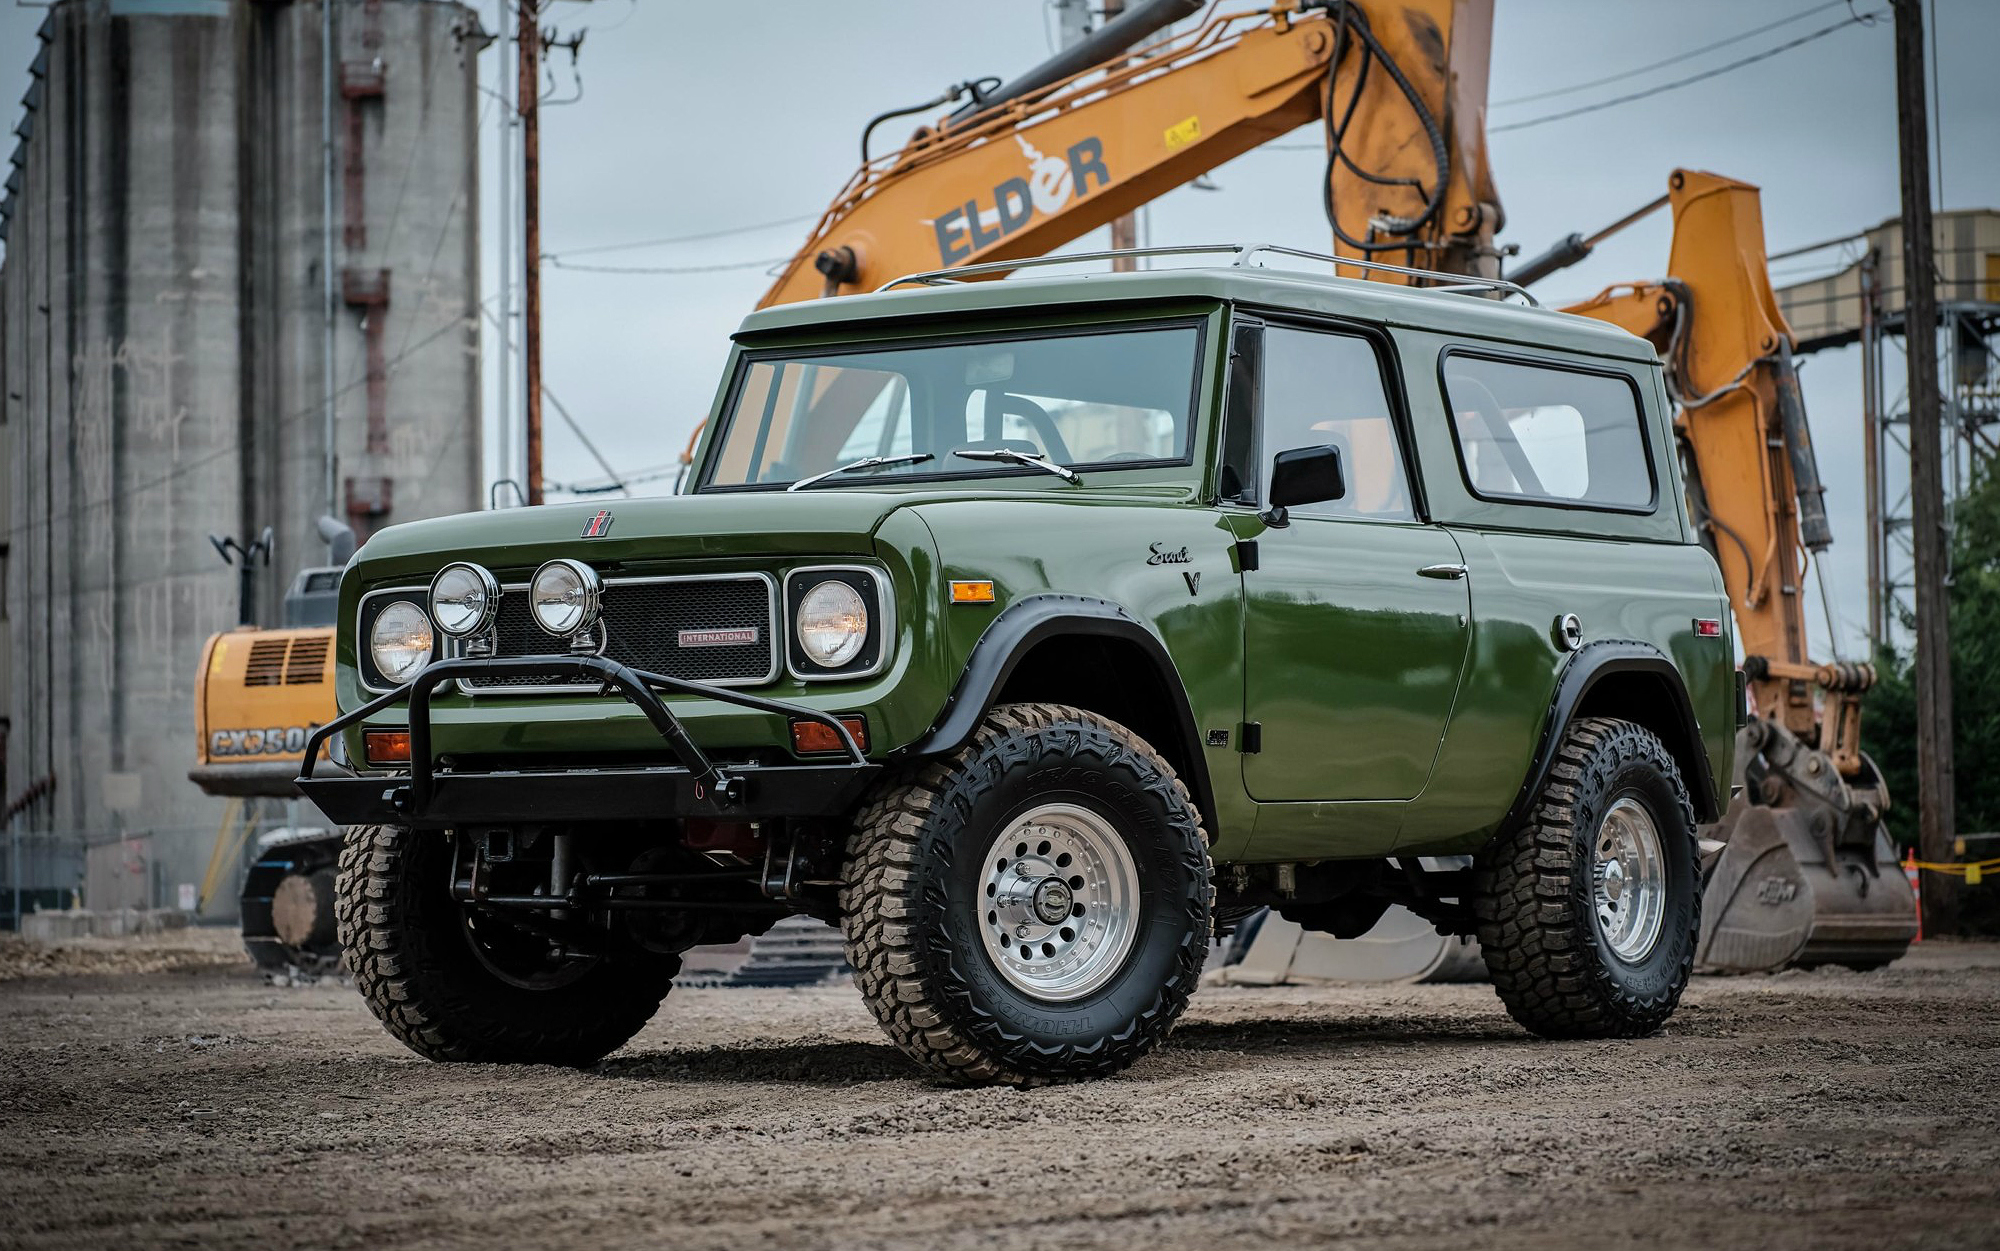 1970 International Harvester Scout 800